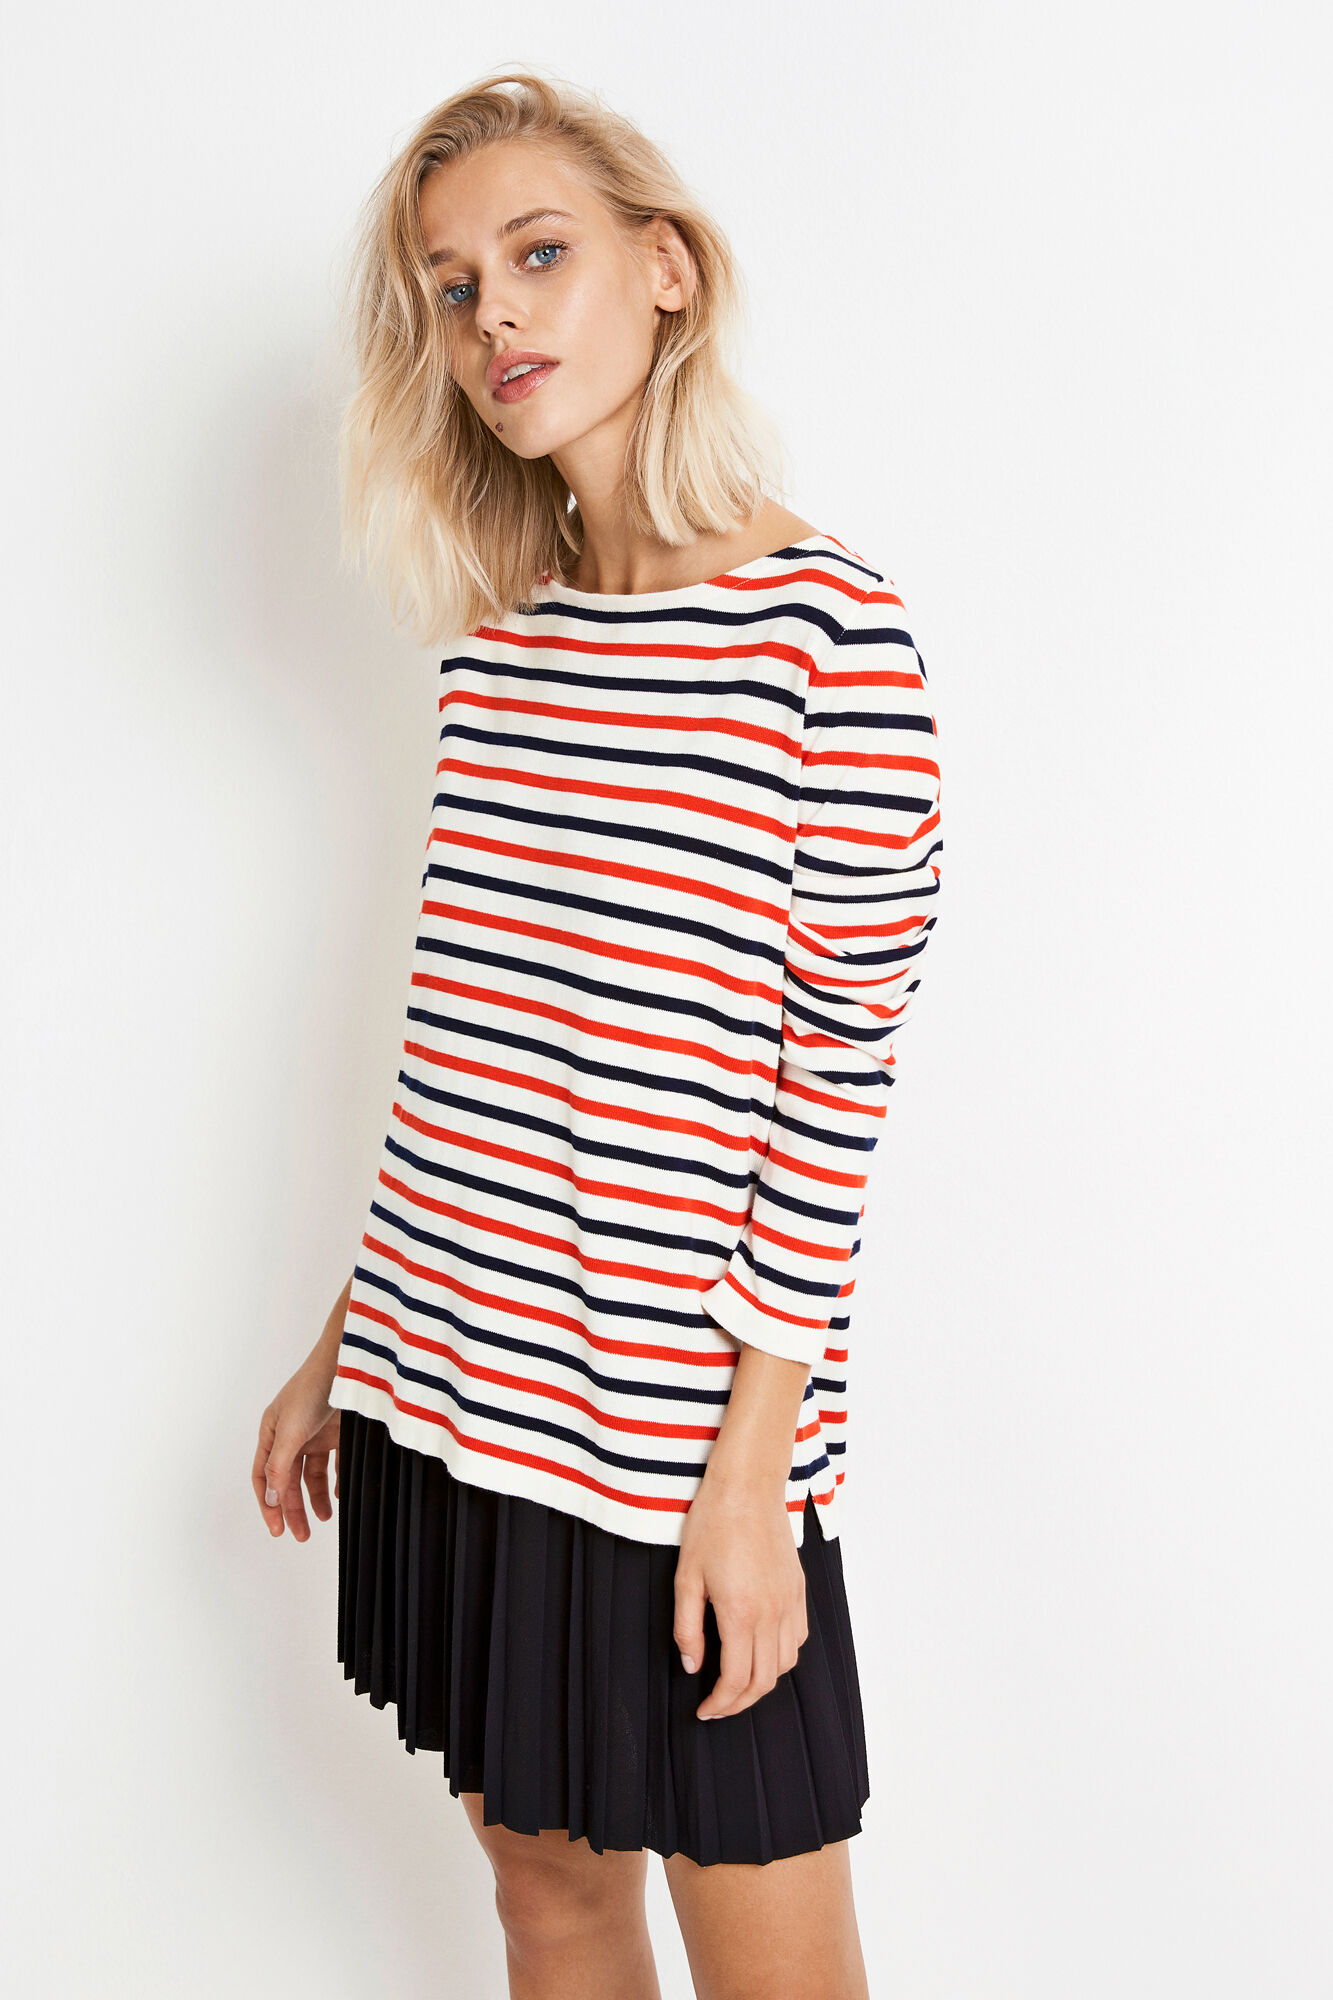 ENNICOSIA KNIT 5073, NAVY-RED STRIPE